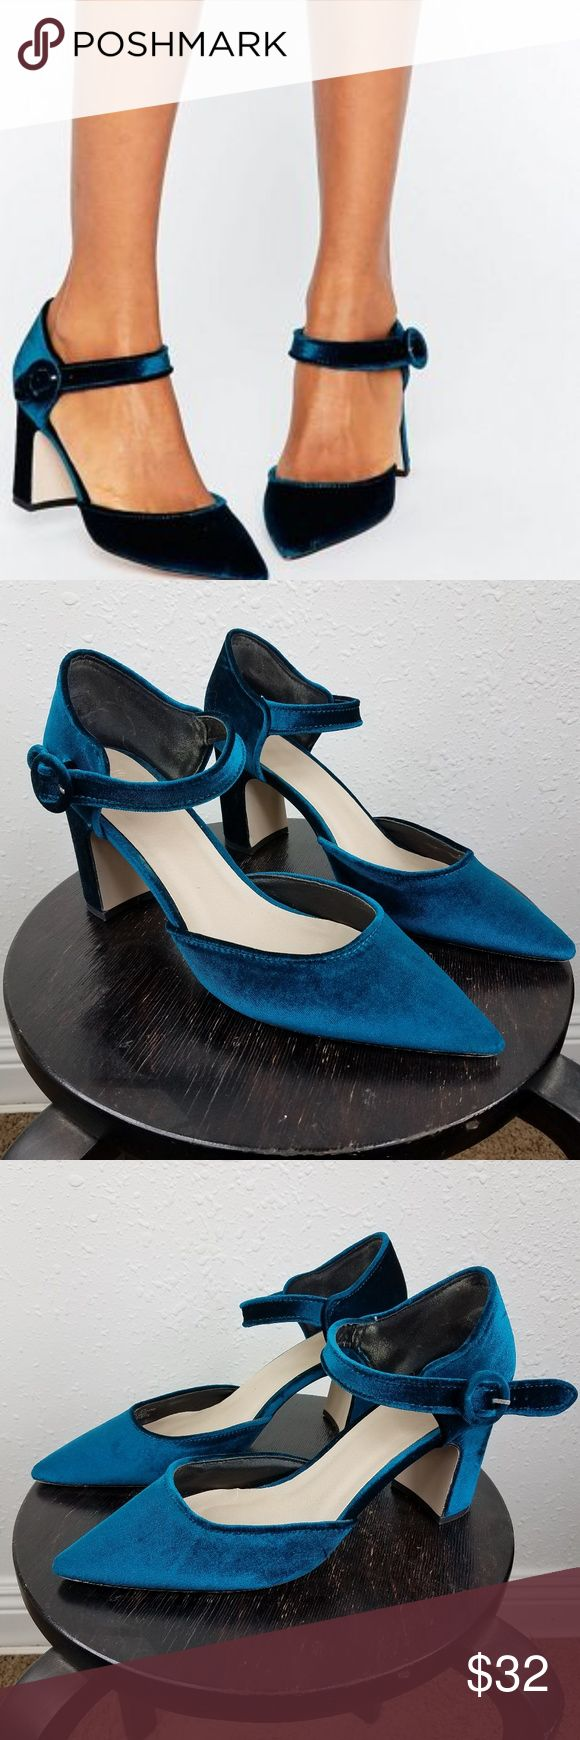 """ASOS Sassi Pointed Buckle Heels Teal Velvet Sz 9 Asos Sassi Pointed Heels  Size: 9 Width: 2"""" Heel height: 3""""  Material: Soft velvet  Condition: Excellent, rarely used condition  Fast Shipping! ASOS Shoes Heels"""